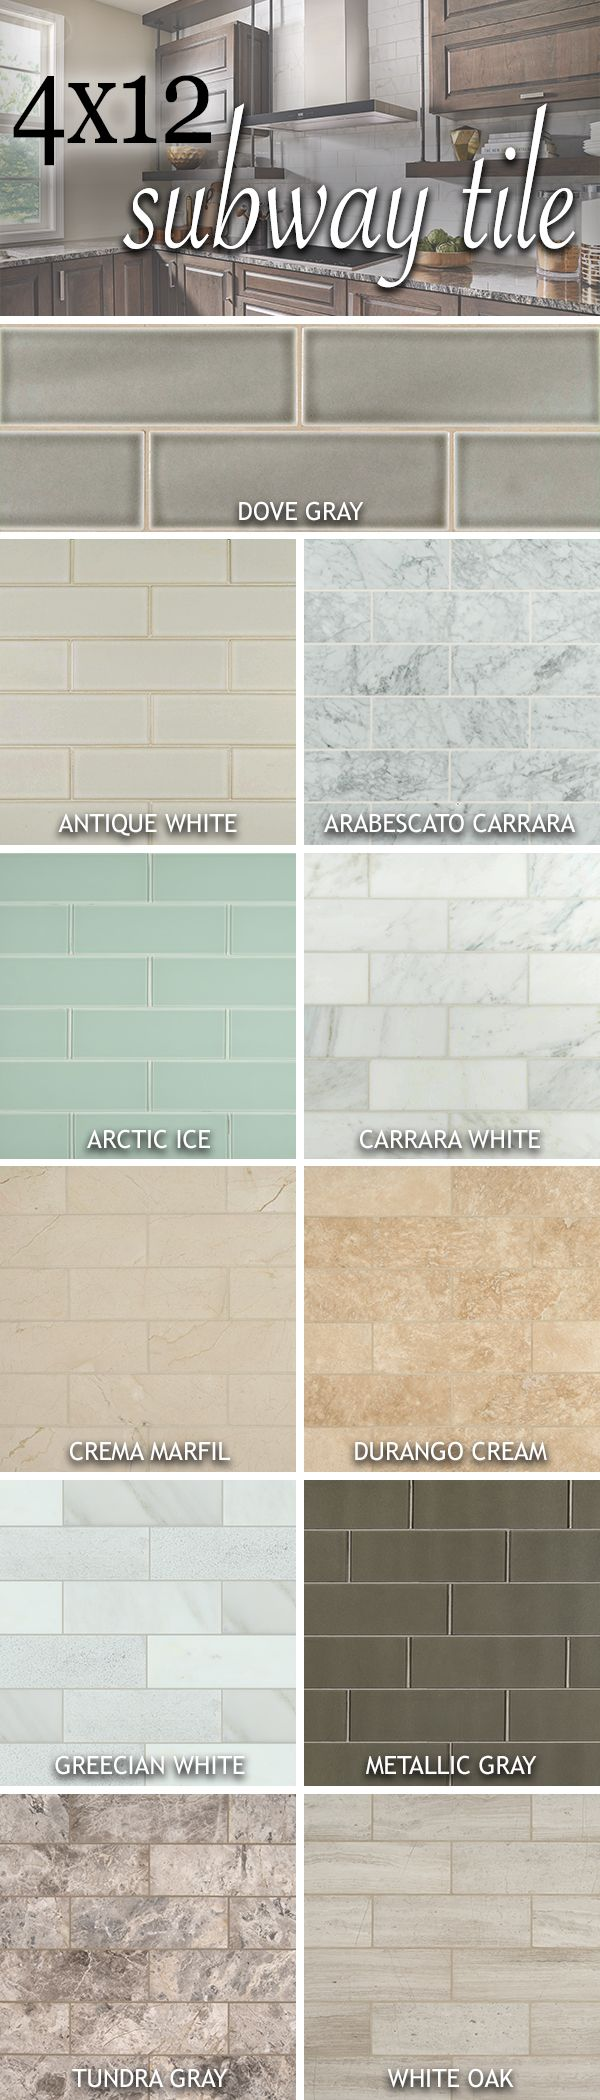 Best 25 subway tile backsplash ideas on pinterest subway tile 21 best kitchen backsplash ideas to help create your dream kitchen dailygadgetfo Choice Image